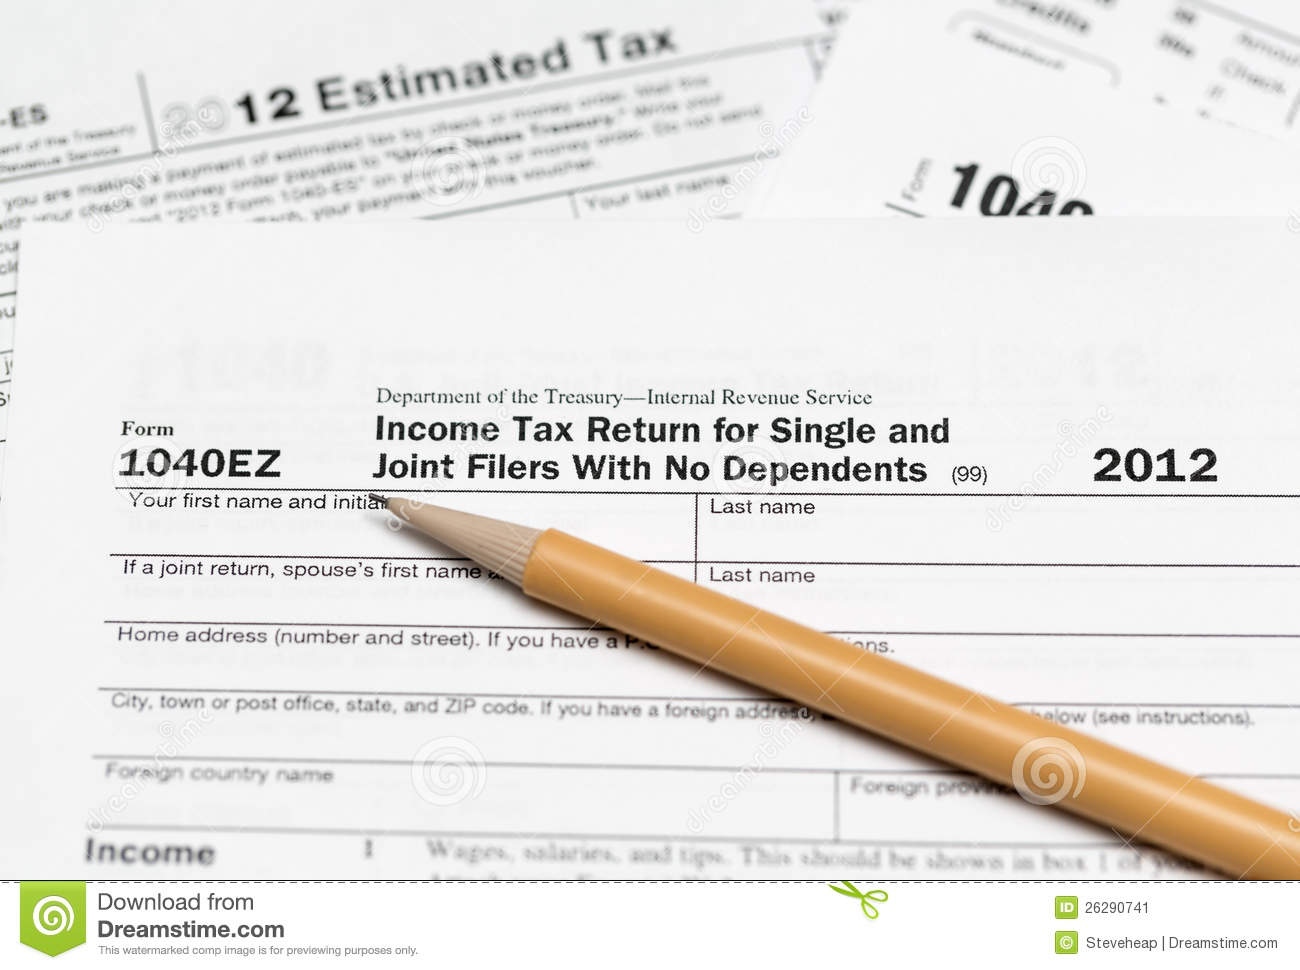 2012 Tax Forms 1040 Ez http://www.dreamstime.com/stock-image-usa-tax